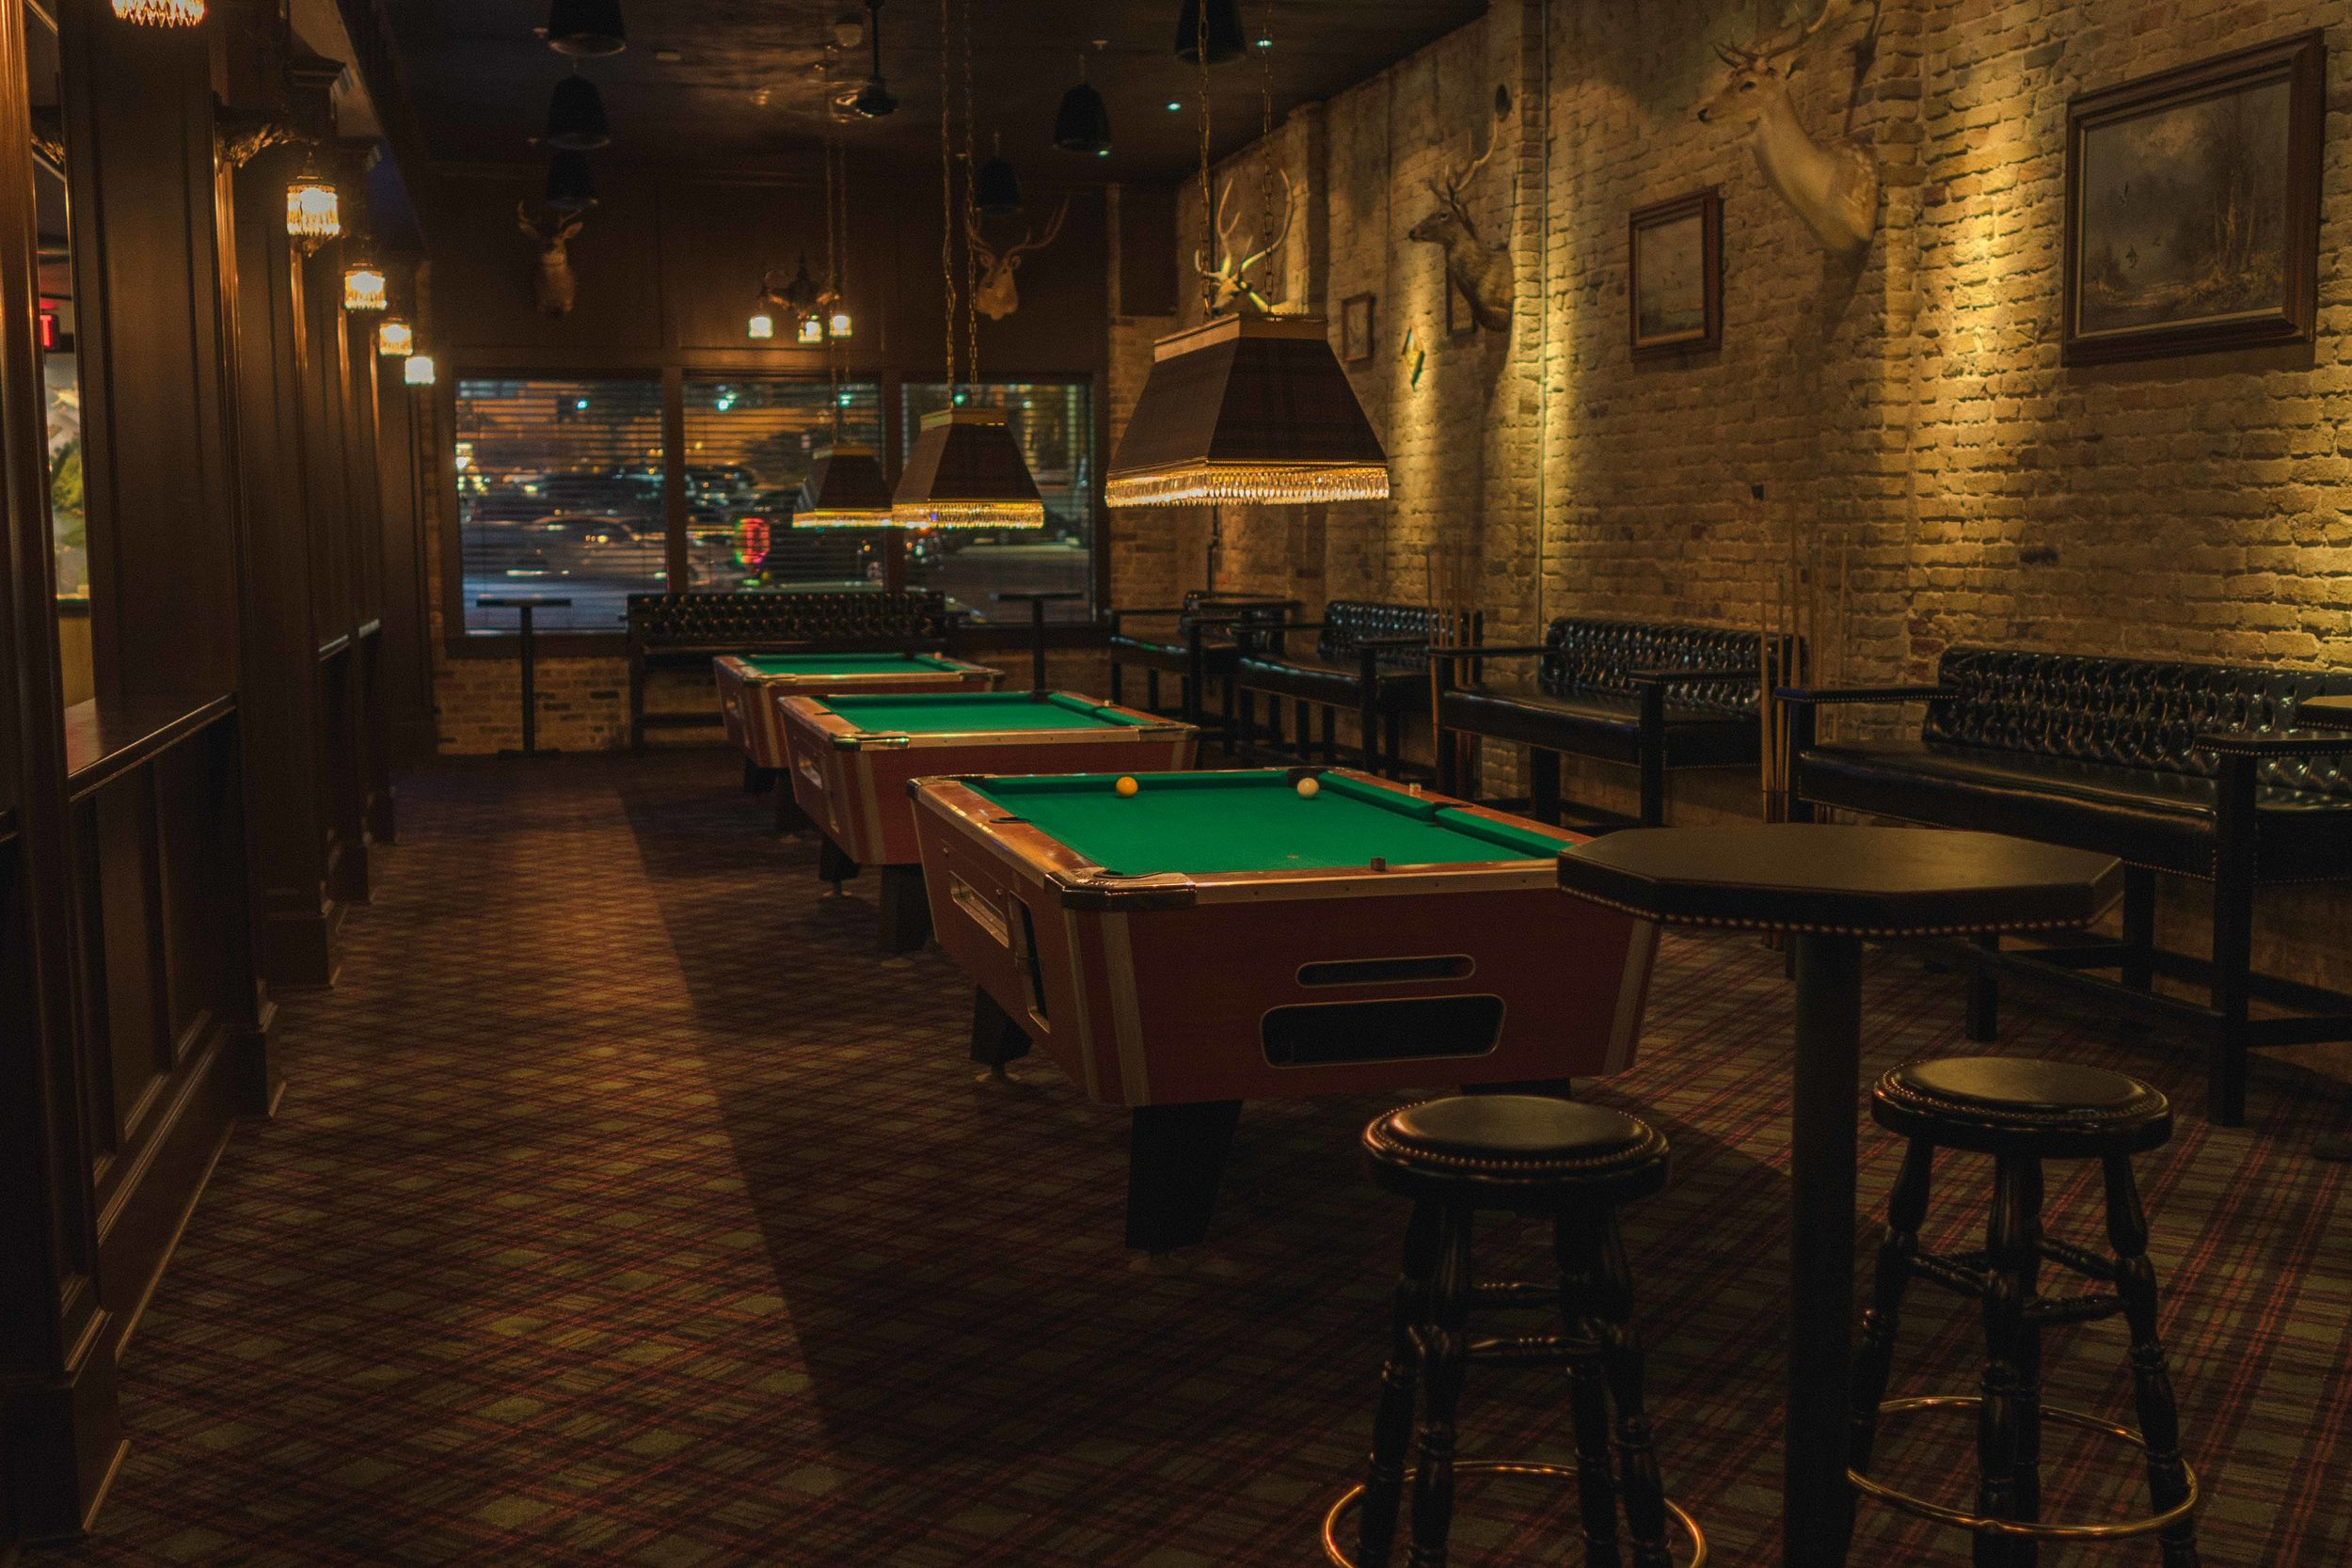 Billiards Lounge